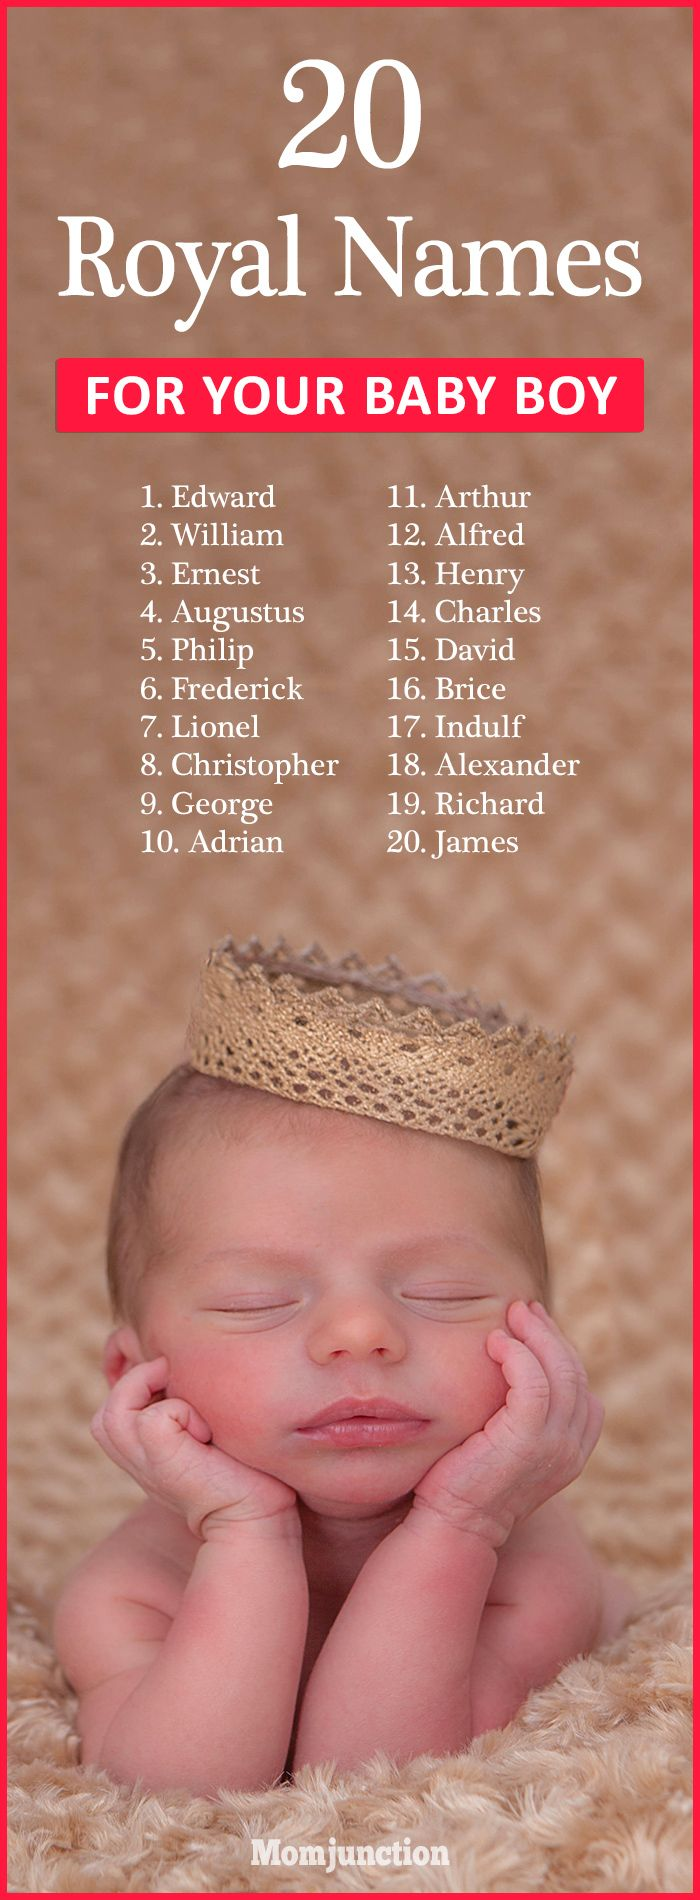 5 year old boy long hair  royal names for your baby boy  boys babies and pregnancy